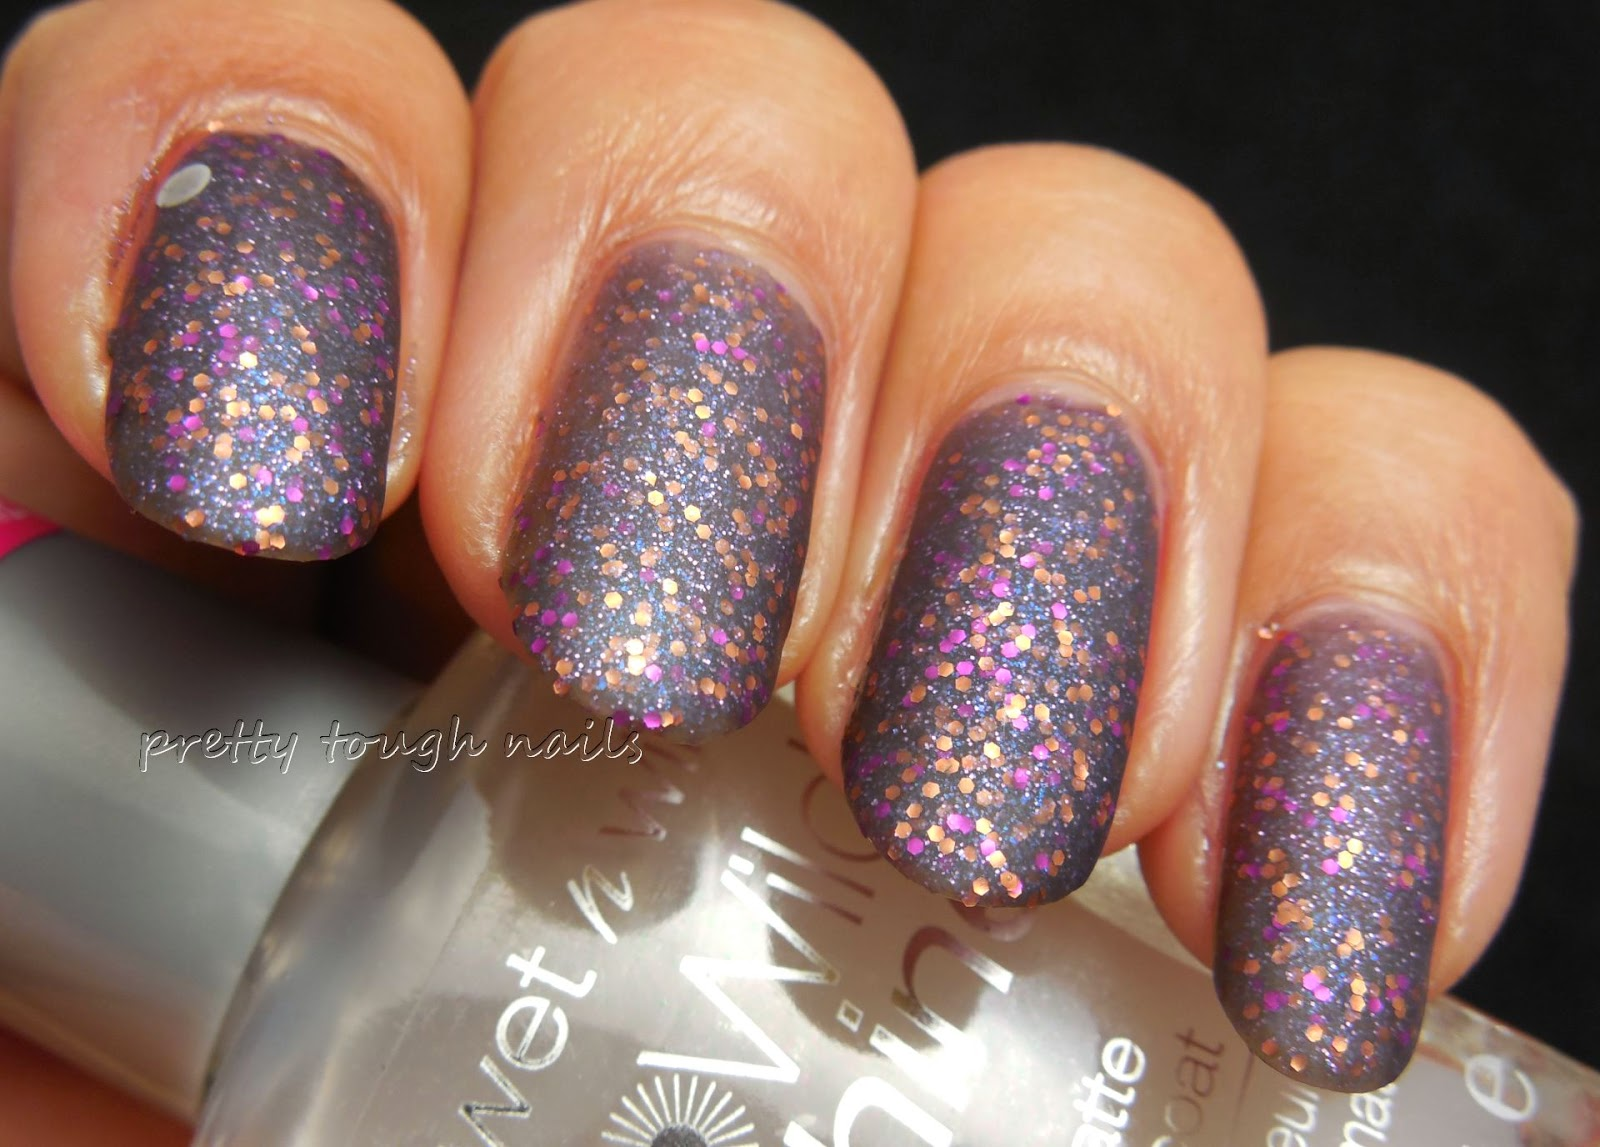 Orly Interglactic Space With Wet 'n' Wild Matte Topcoat